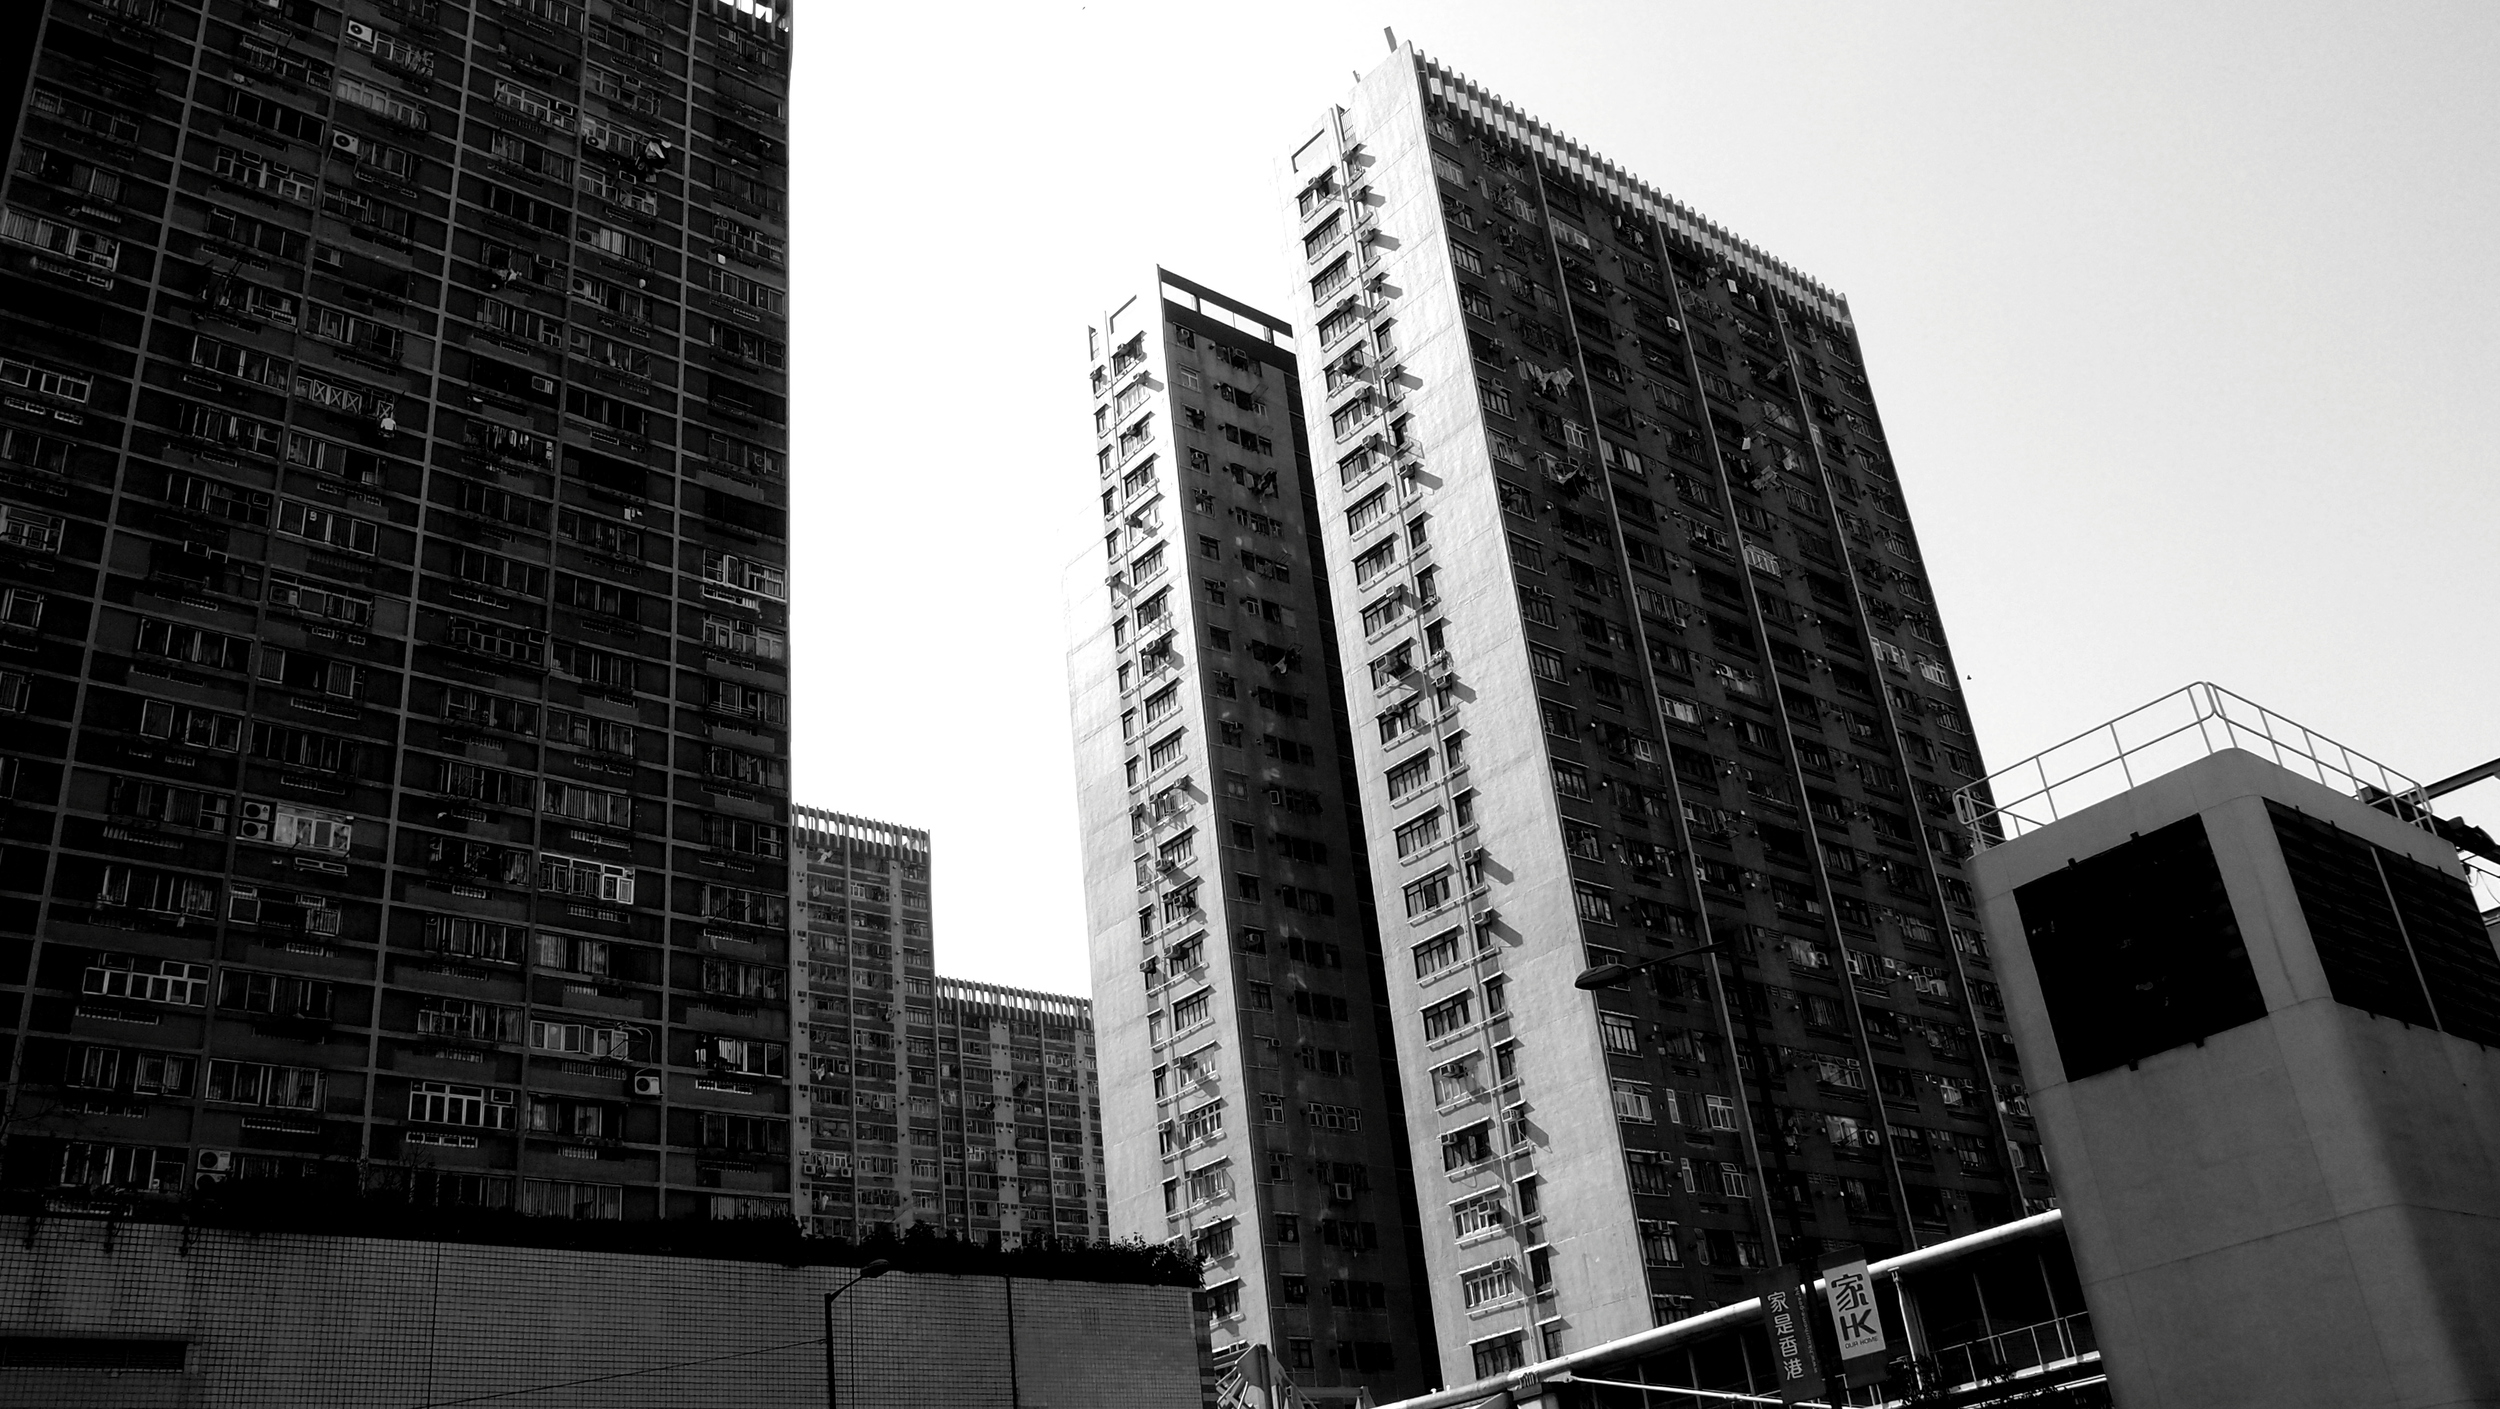 Public Housing in Wong Tai Sin - subsidised housing for the masses